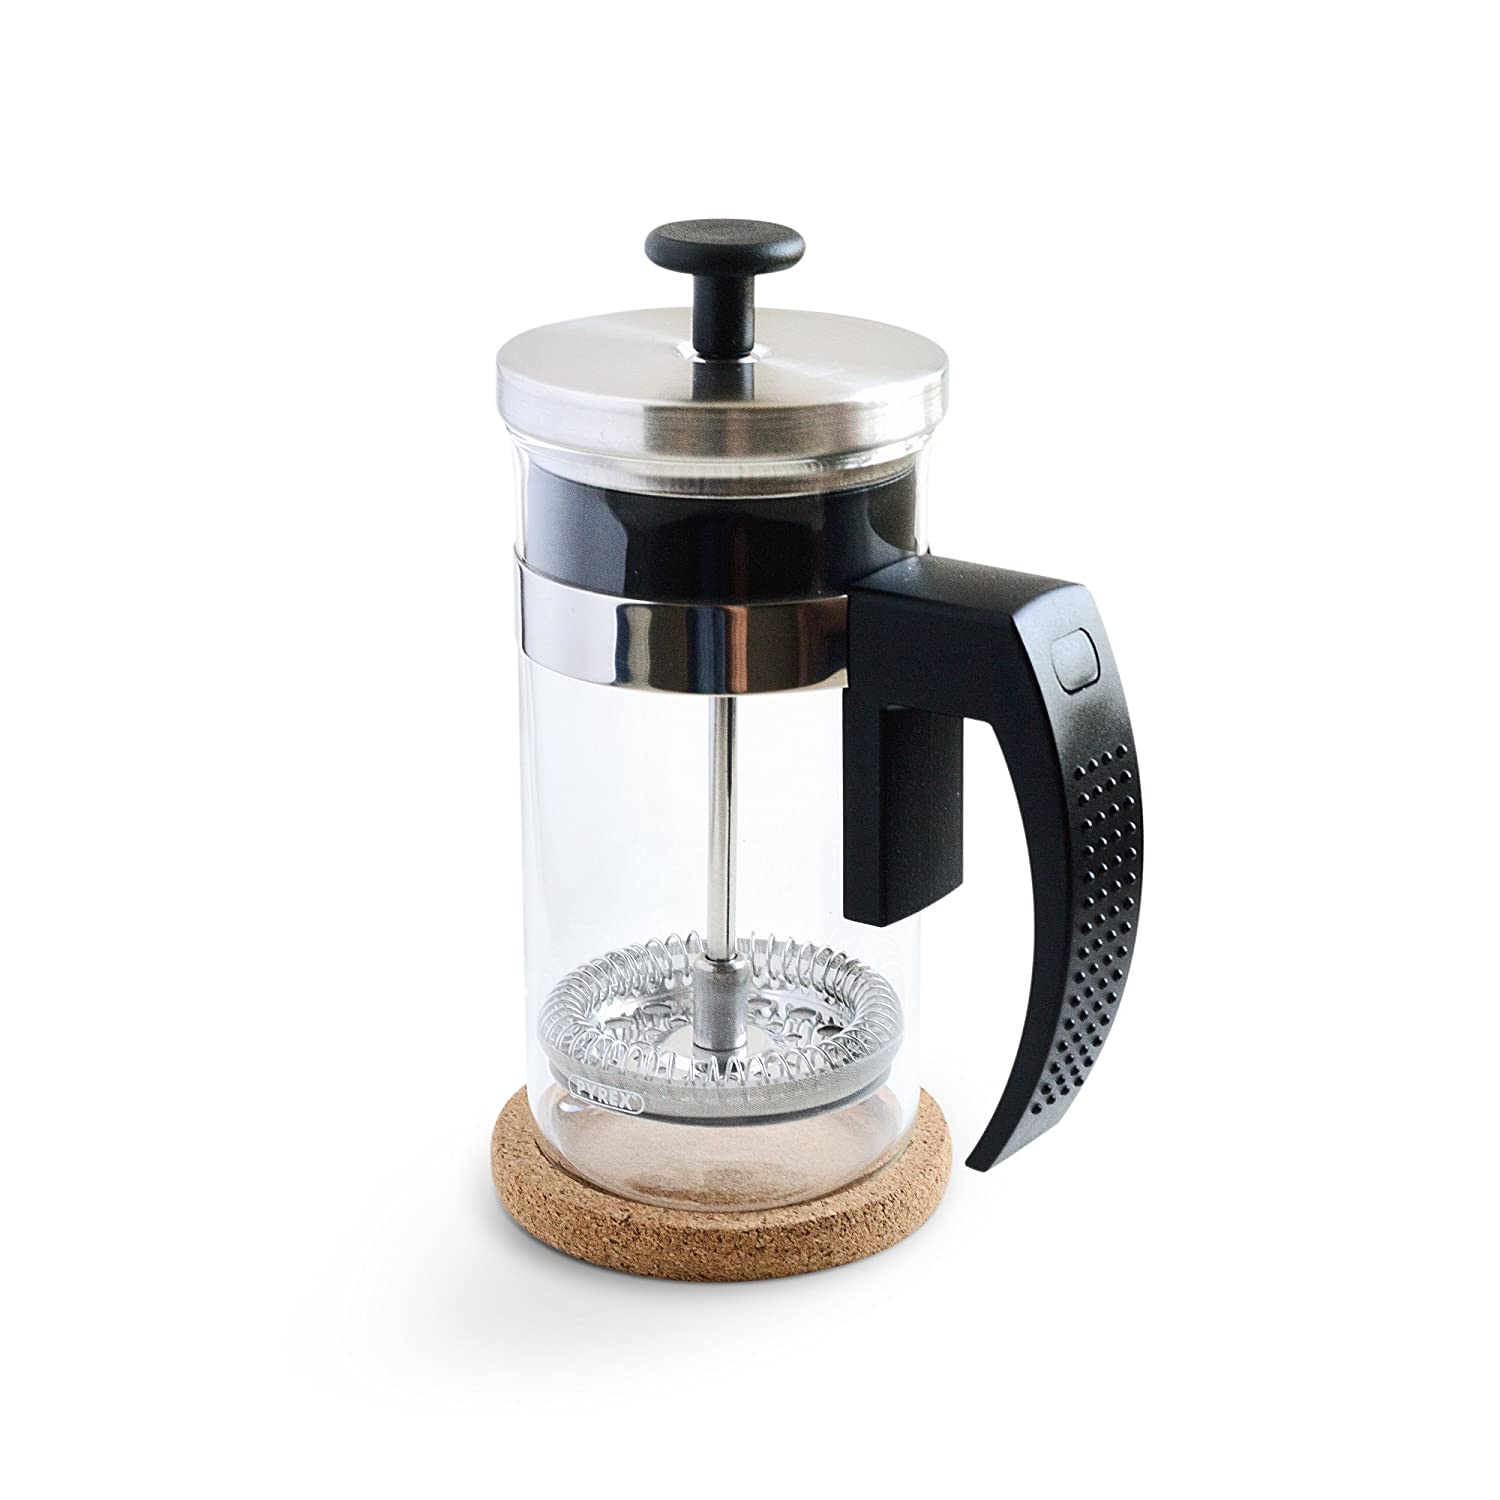 Best Coffee Makers for College Students - Top Coffee Makers for College Students Review